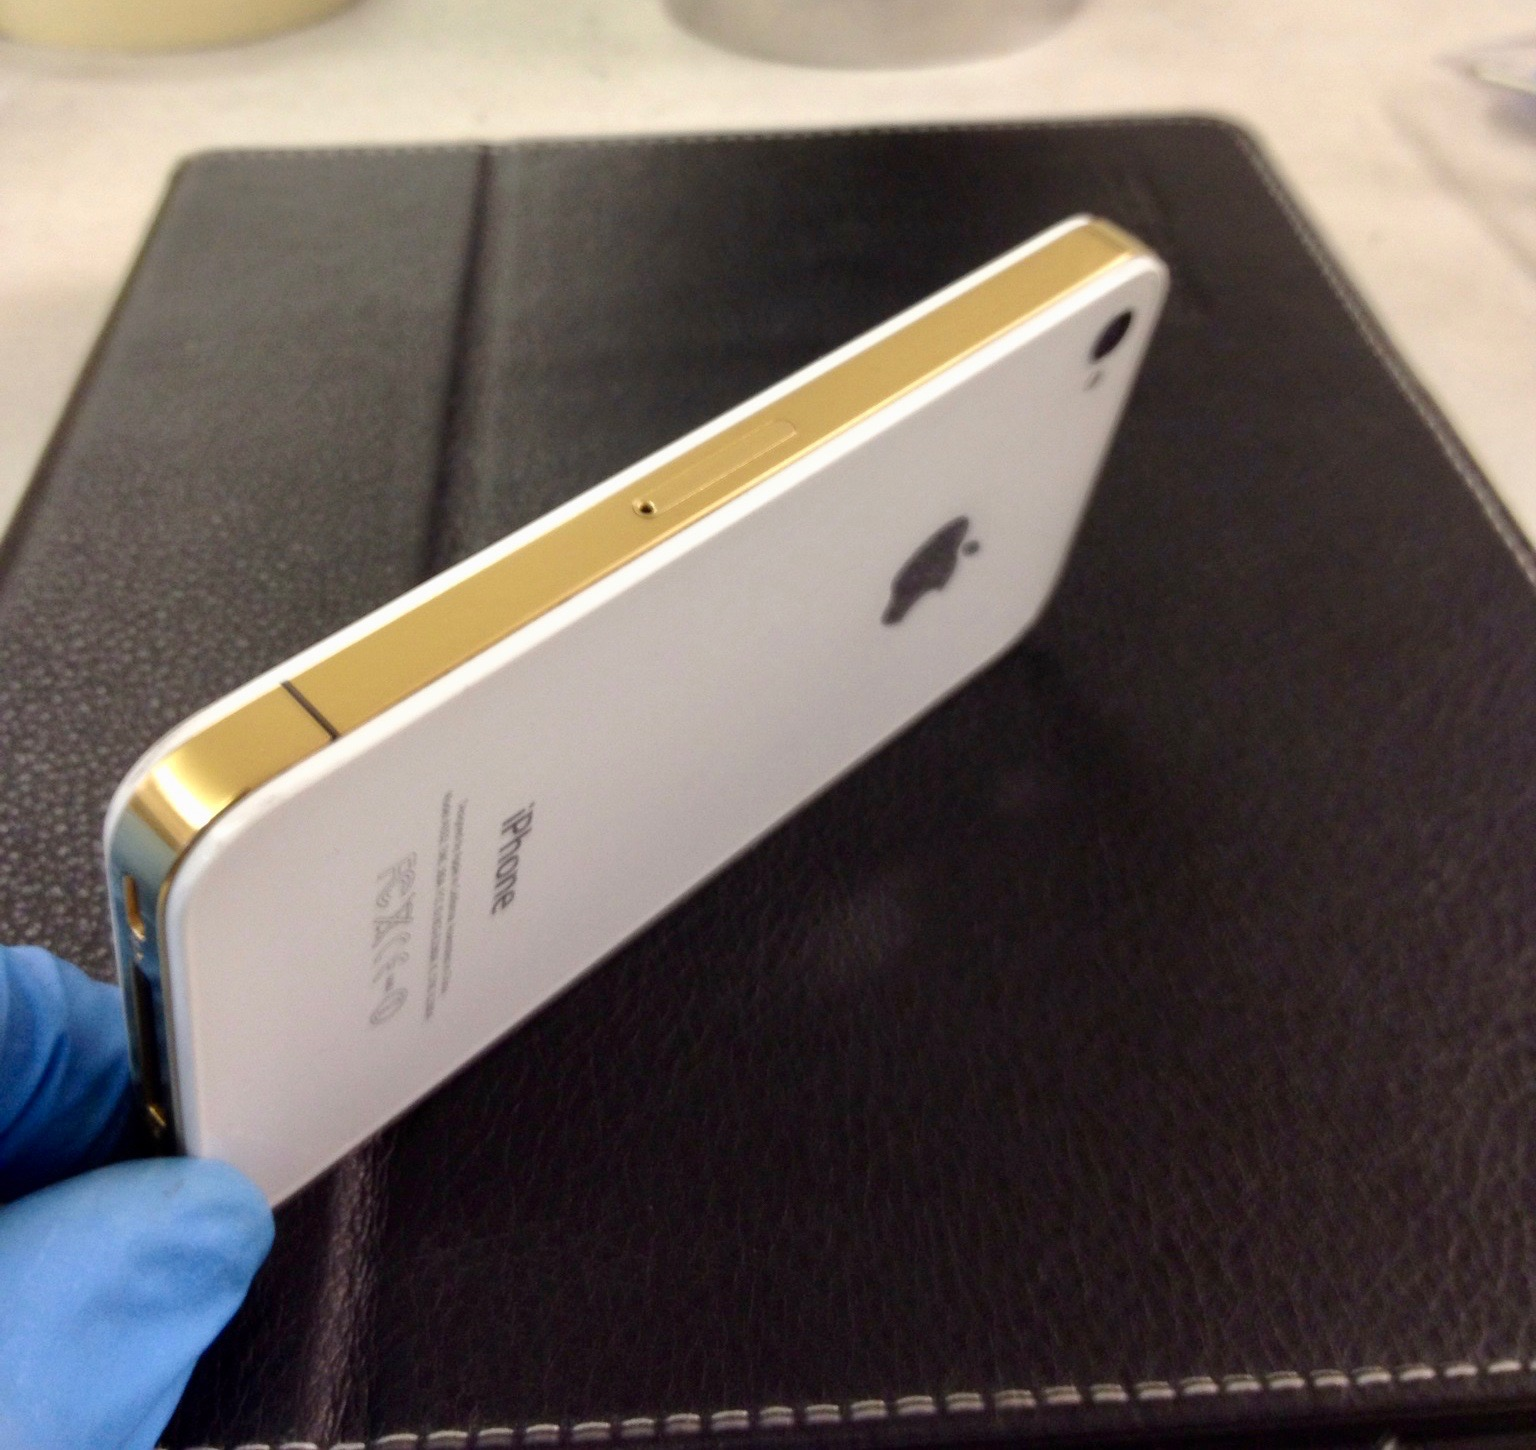 24k gold plating on an iphone